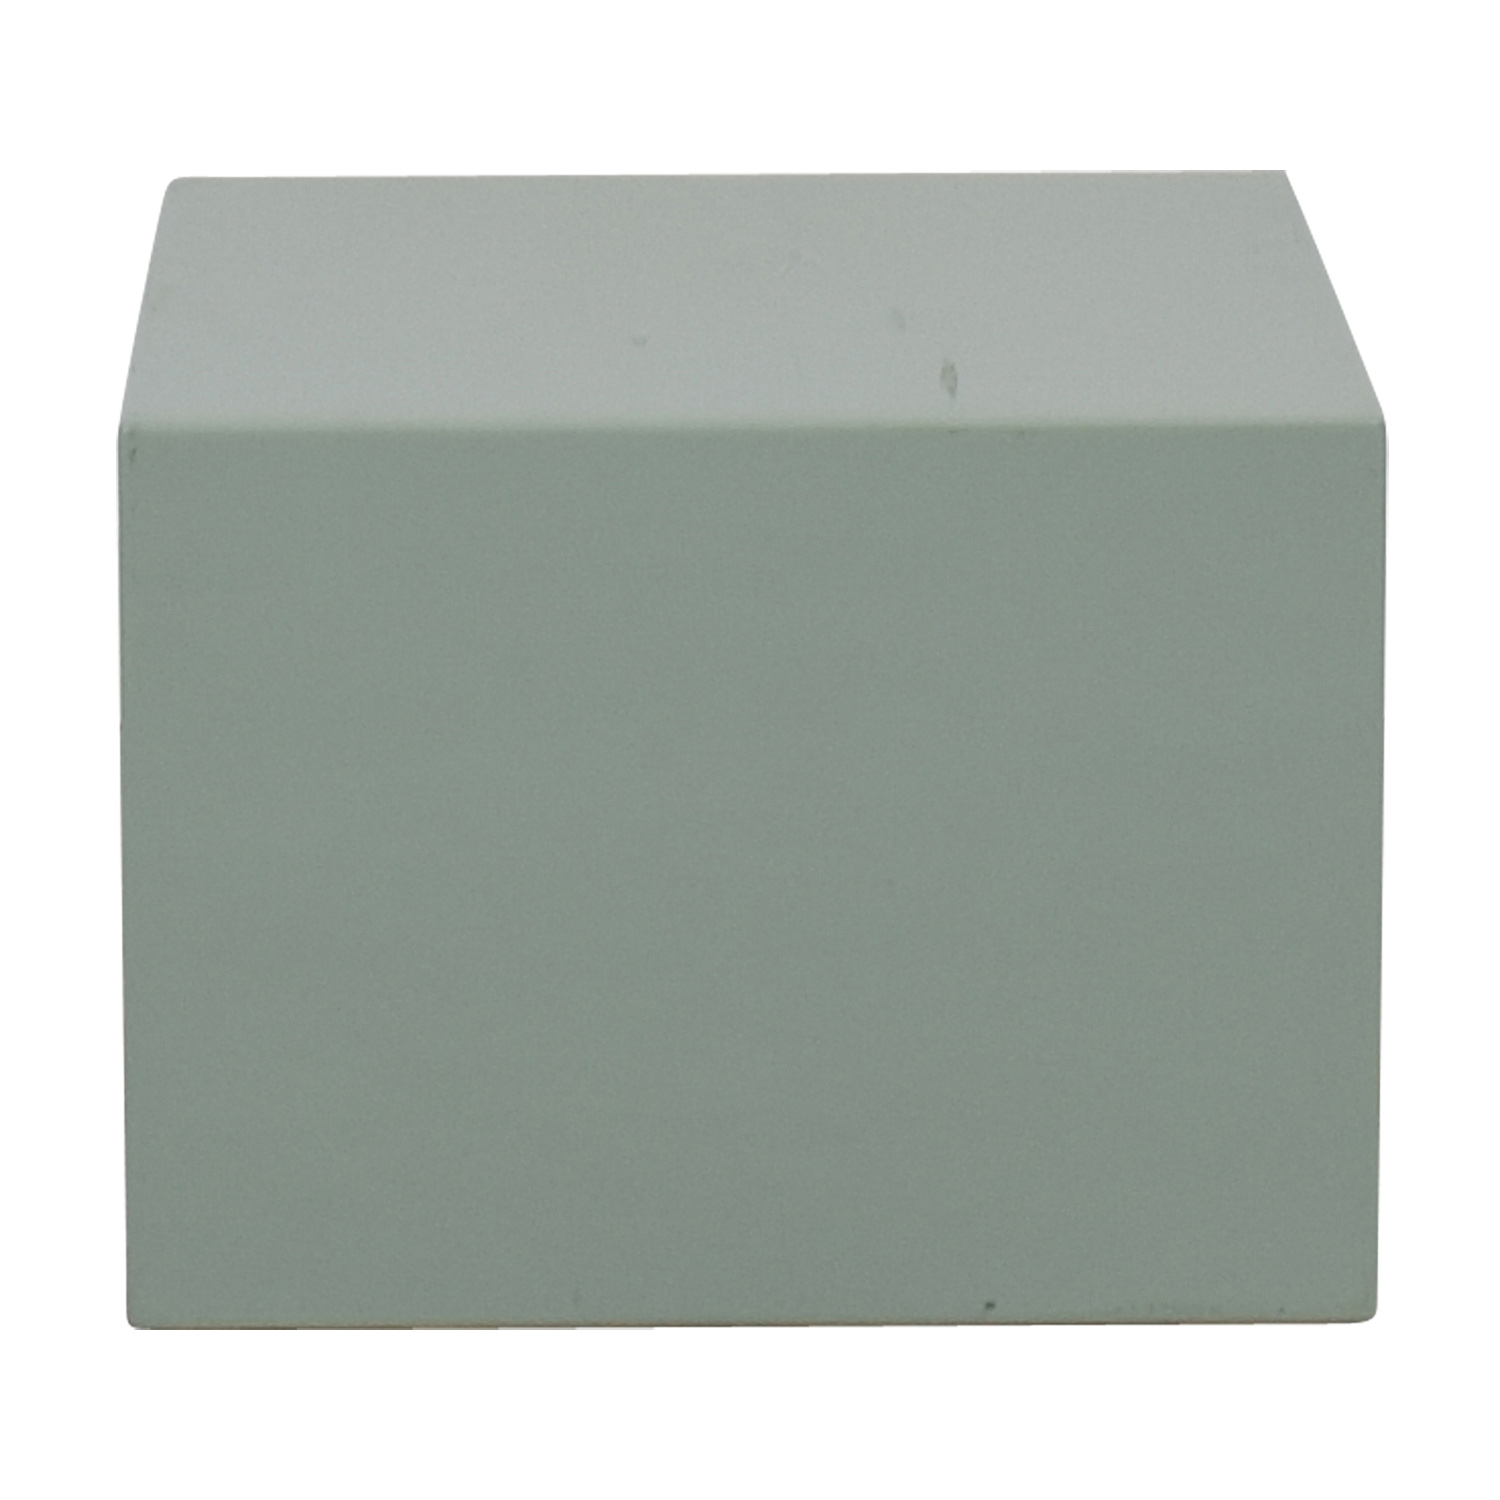 CB2 CB2 City Slicker Mint Green Side Table coupon